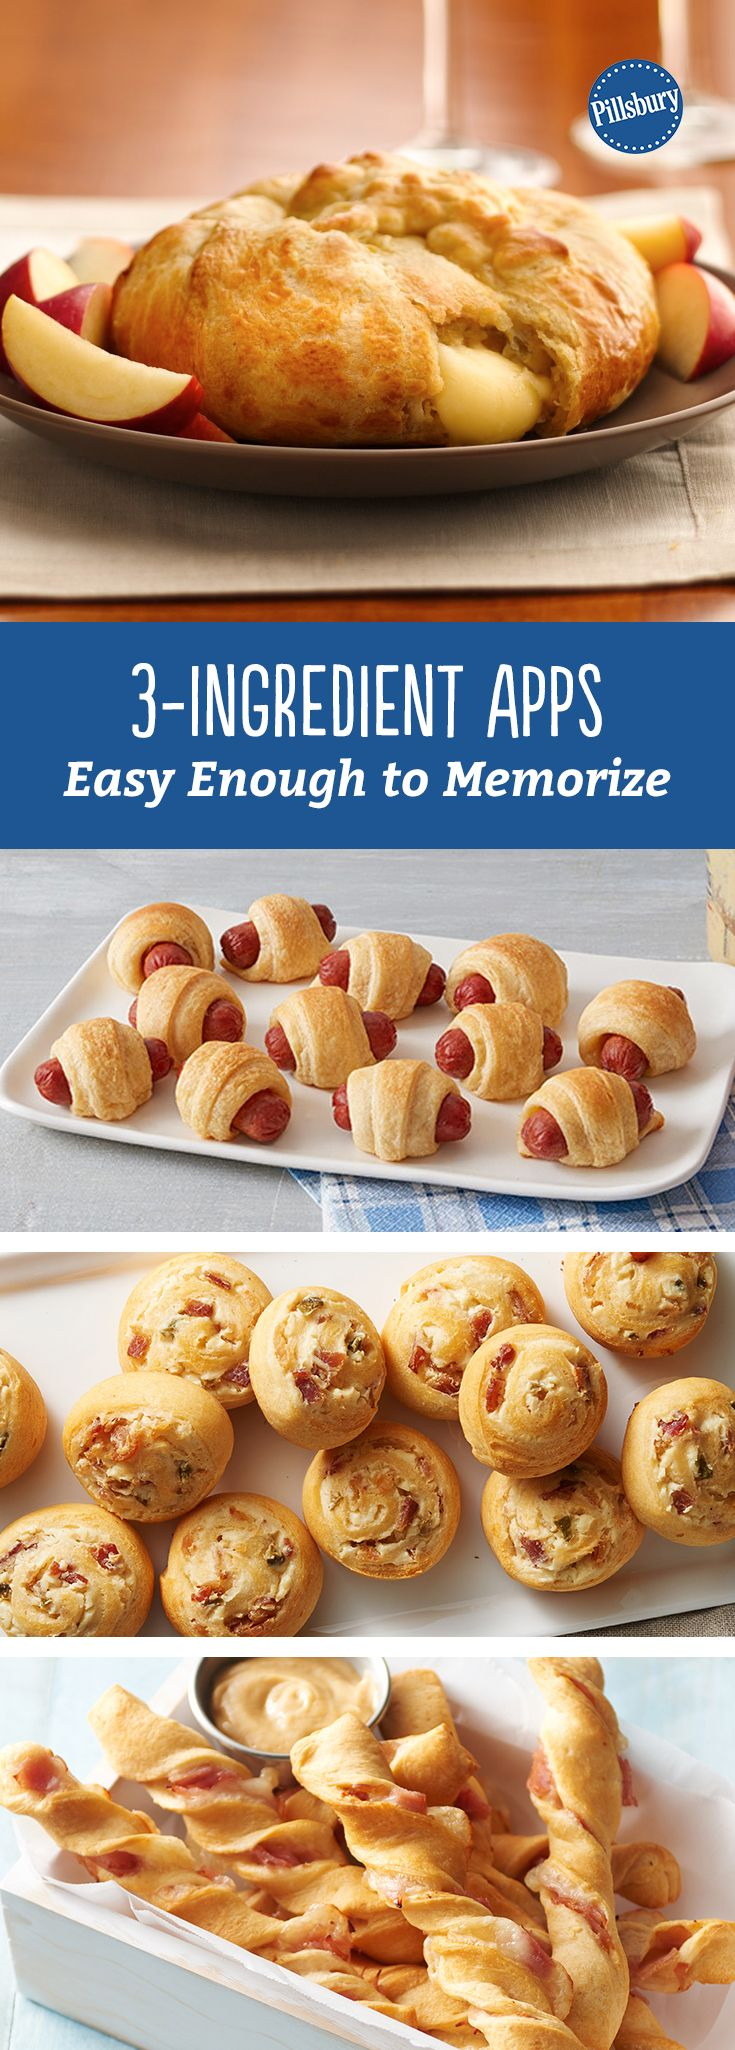 3-Ingredient Apps Easy Enough to Memorize: All the un-recipe recipes you need to throw the best party ever.